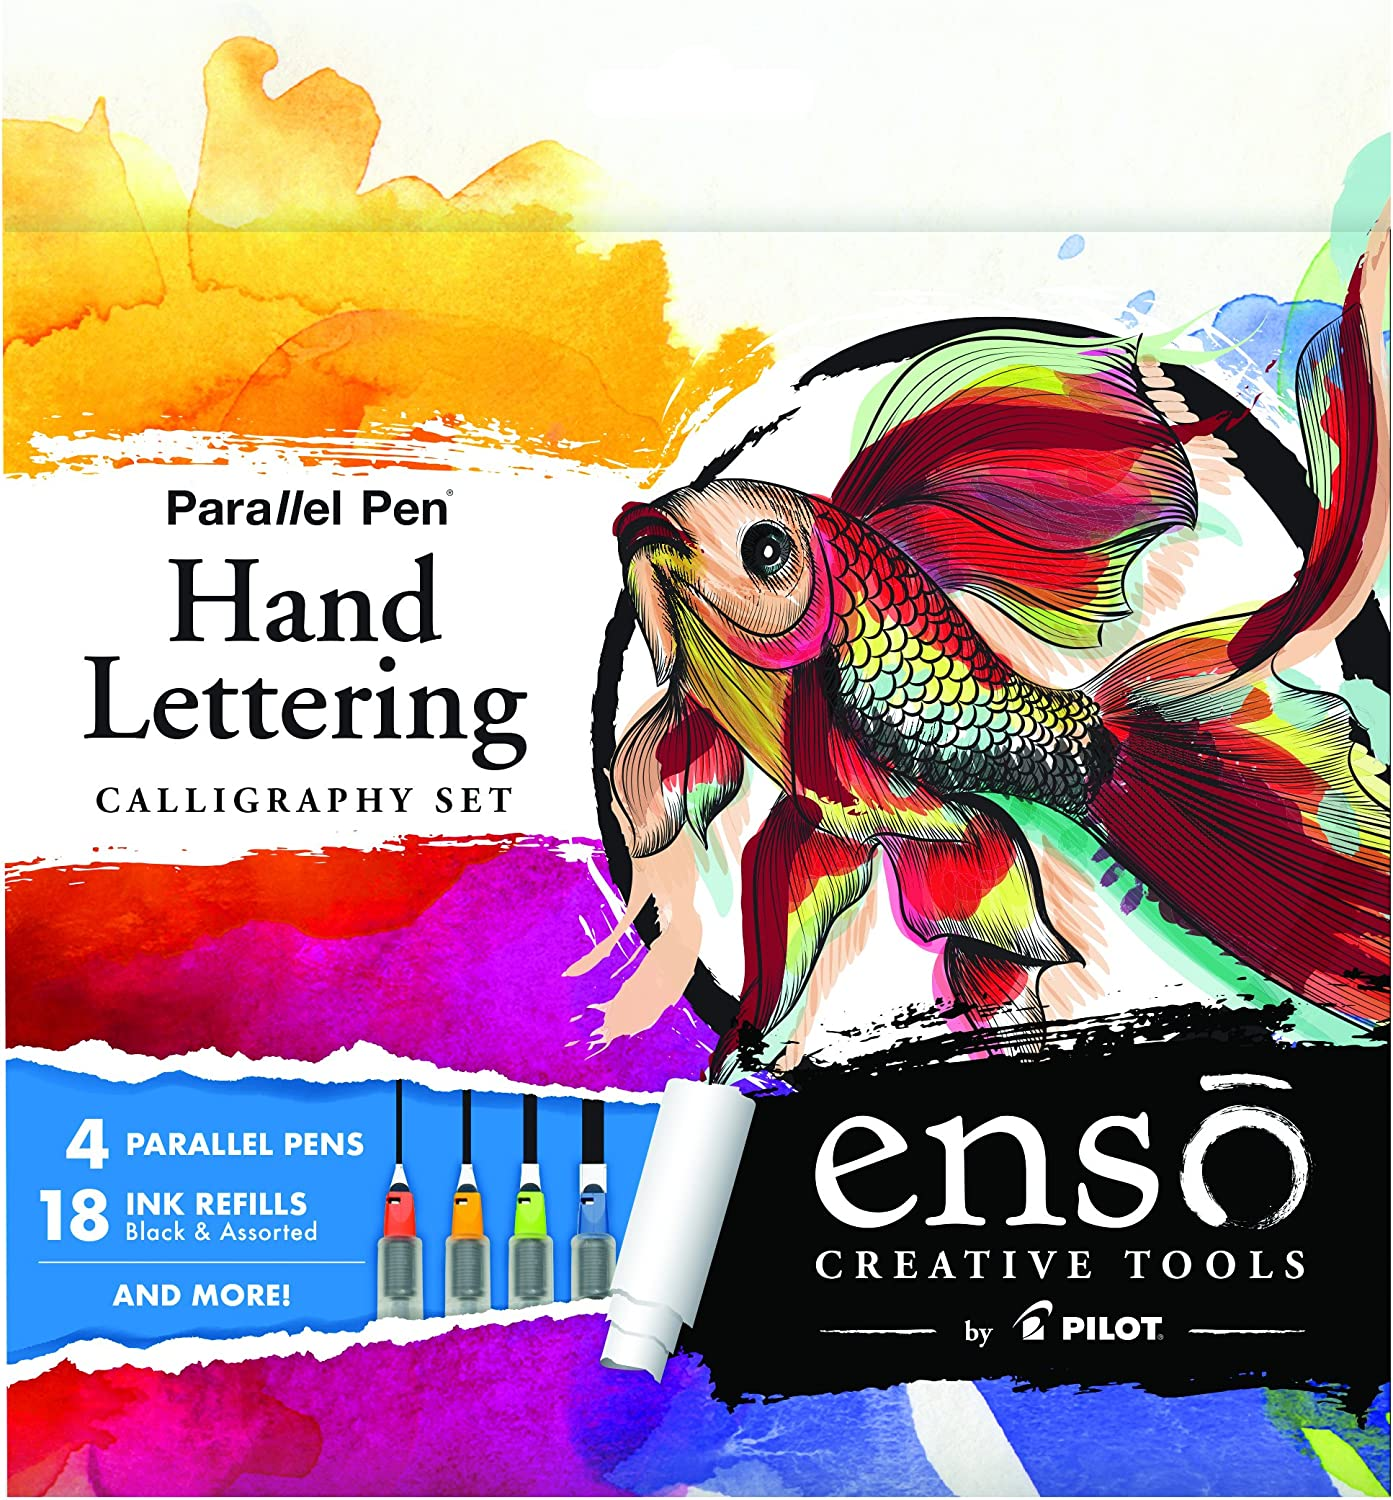 PILOT Enso Parallel Pen Hand Lettering Calligraphy Set - Amazon Exclusive Kit!; 4 Nib sizes (1.5mm, 2.4mm, 3.8mm, 6.0mm) Calligraphy, Hand Lettering or Whatever Your Muse Inspires (10678)